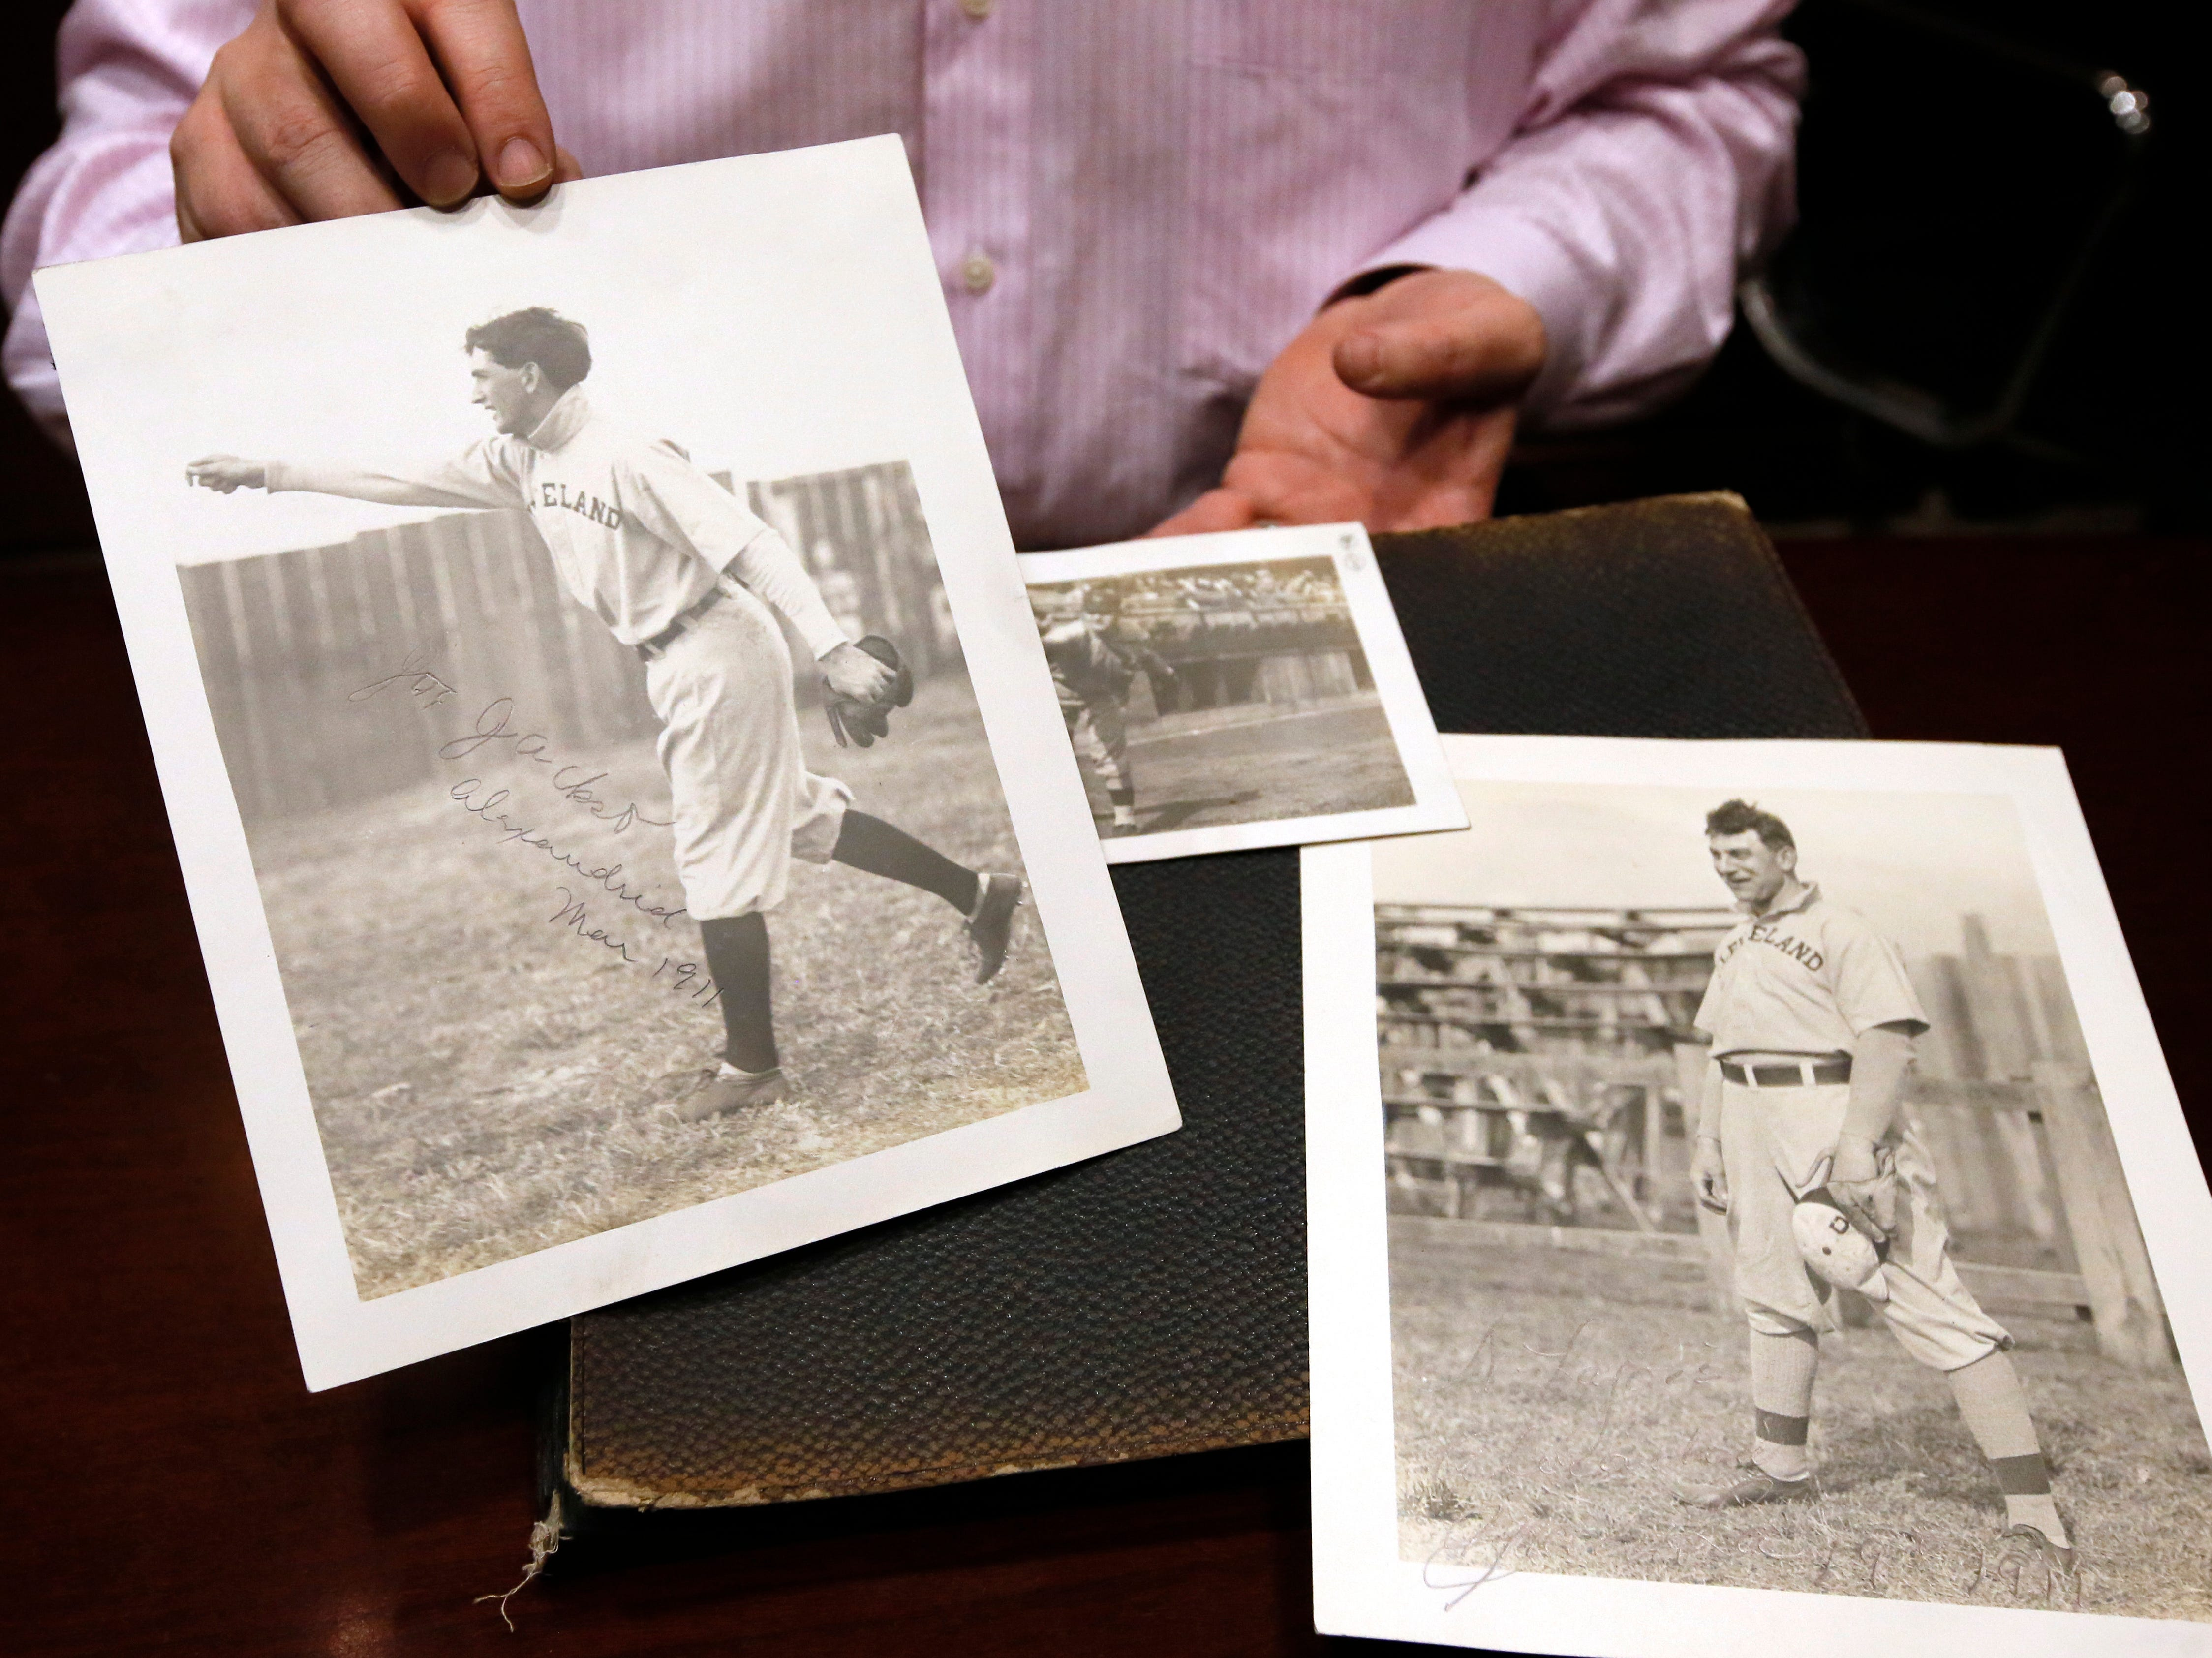 In this Jan. 22, 2015, photo, Chris Ivy, director of sports auctions at Heritage Auctions in Dallas, holds autographed photos of Cleveland ballplayers Joe Jackson, left, Christy Mathewson, center, and Nap Lajoie, right. Sharon Bowen thought her late husband was a bit crazy for buying a scrapbook with a bunch of black and white photos of Cleveland ballplayers from the early 1900s, but not anymore. It turns out that scrapbook held what may be the only autographed photo of Shoeless Joe Jackson. (AP Photo/Tony Gutierrez)